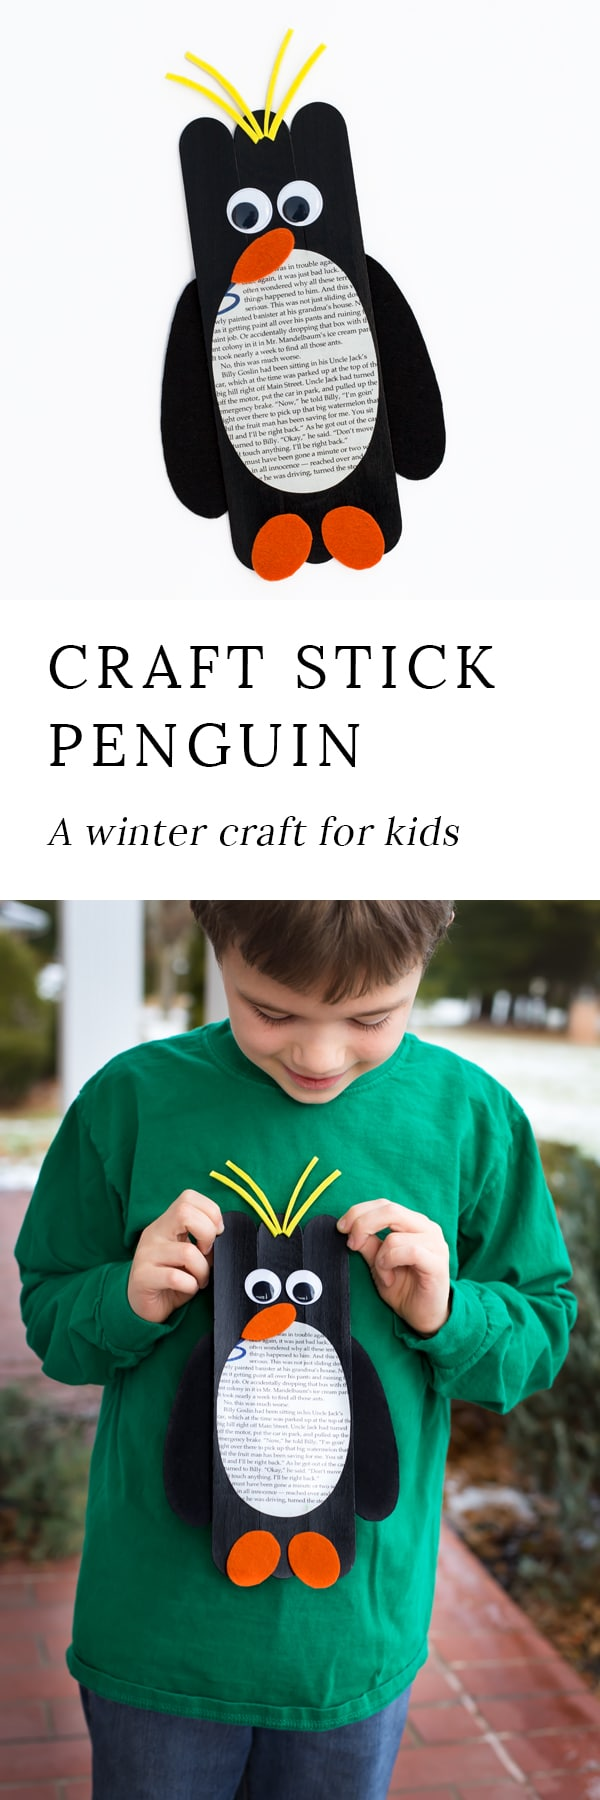 Crafters of all ages will enjoy making Giant Craft Stick Macaroni Penguins. Such a fun craft for winter!